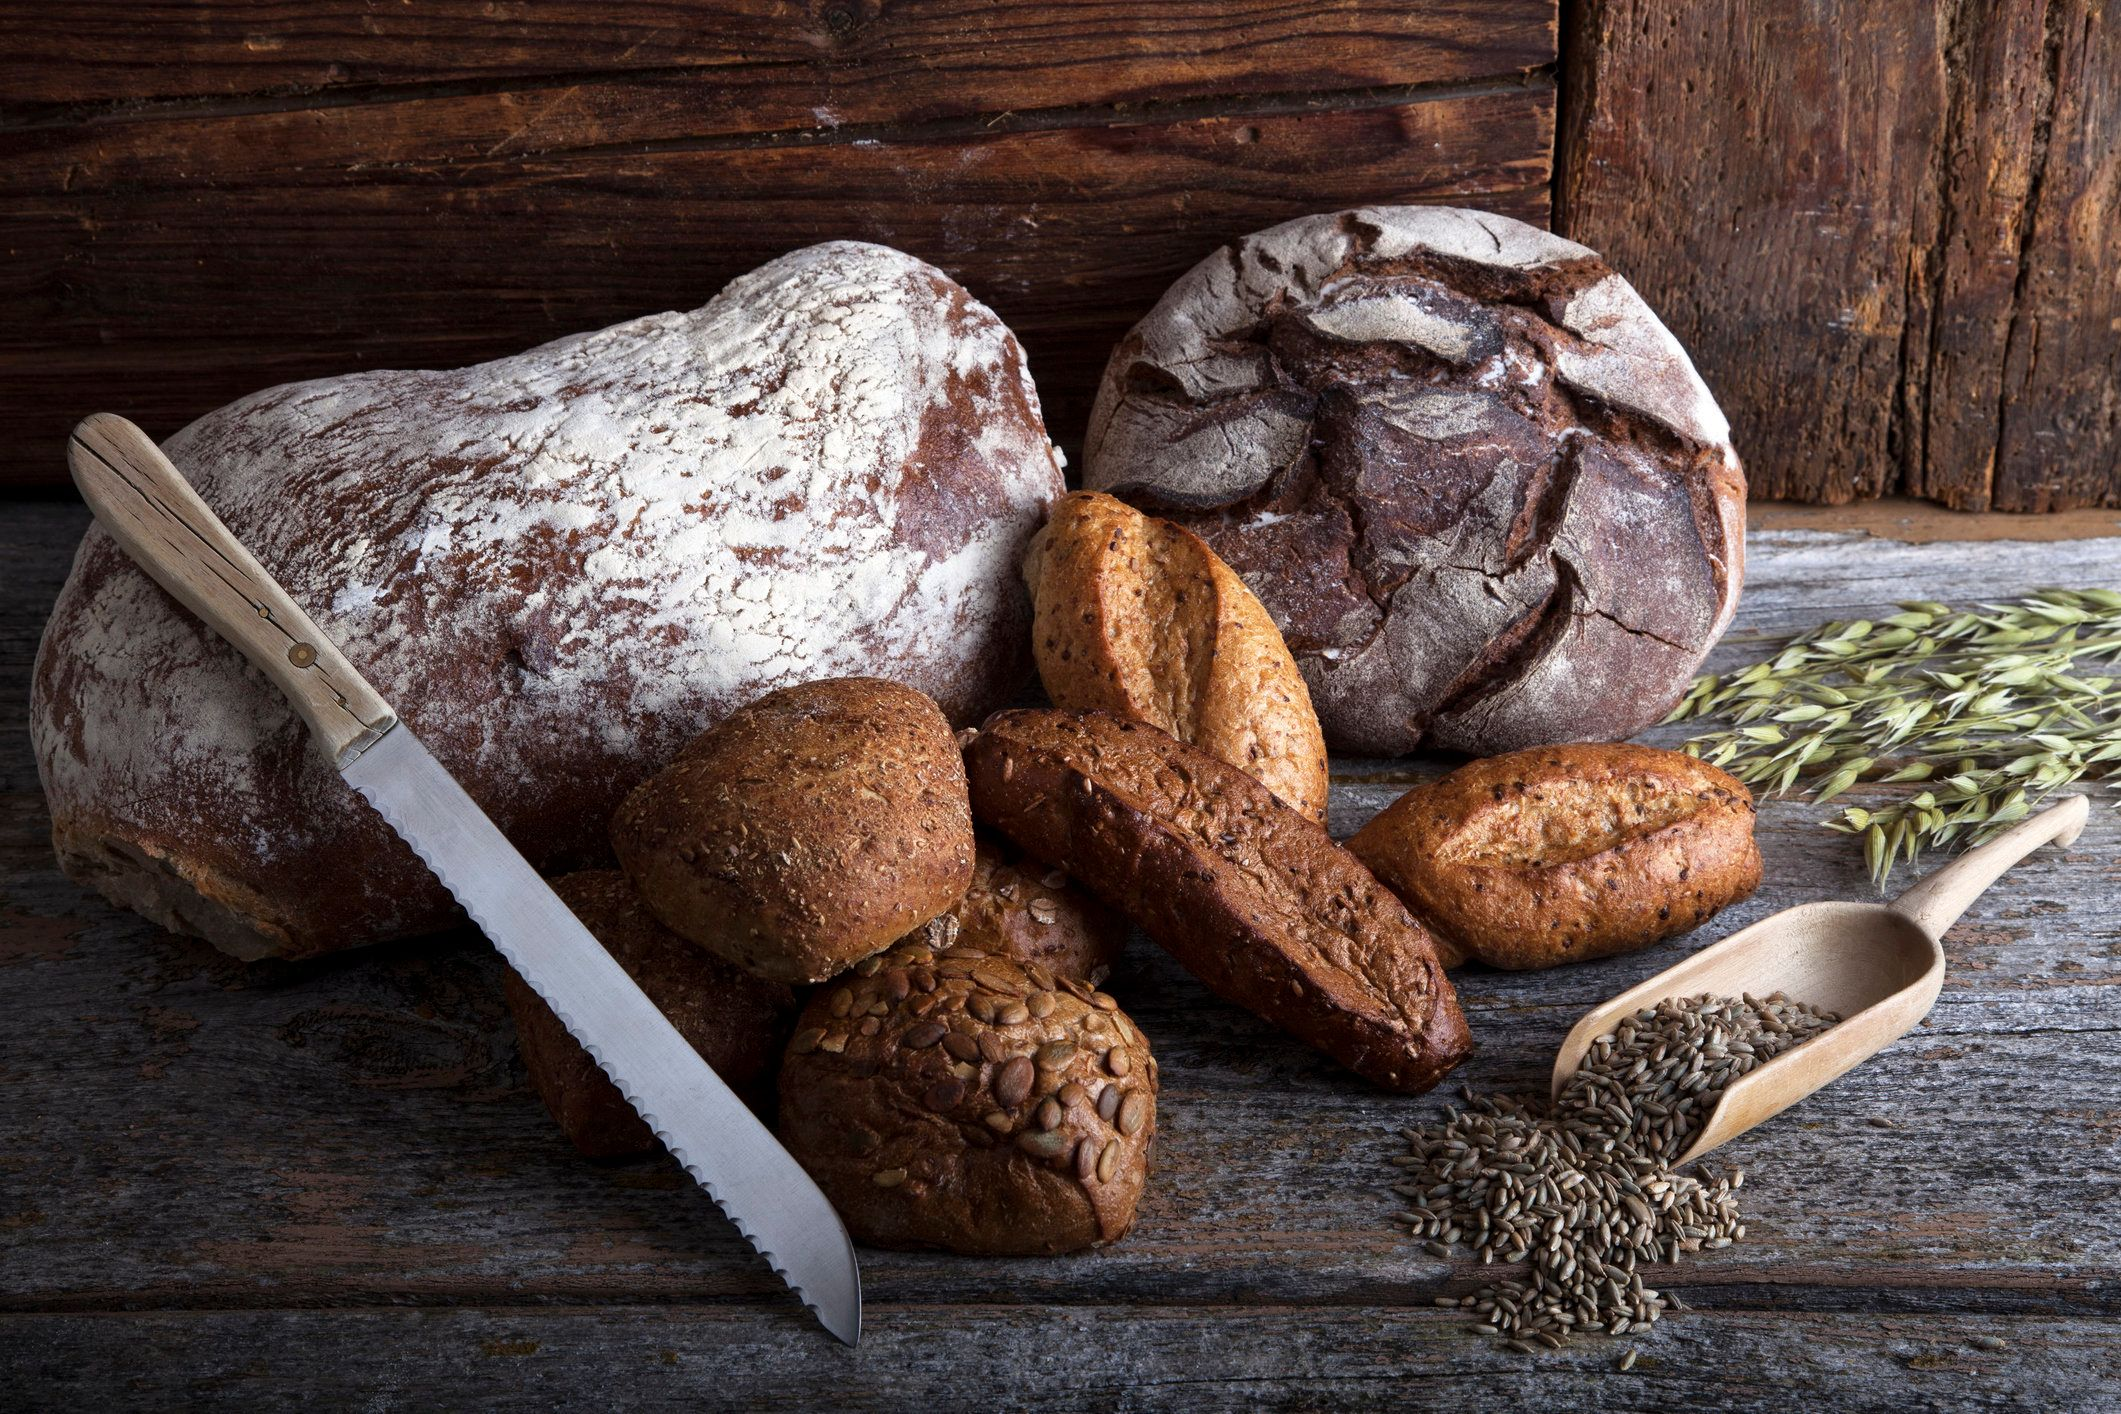 The percentage of Americans who follow a gluten-free dietis more than three times higher than the percentage of Americans with celiac disease.